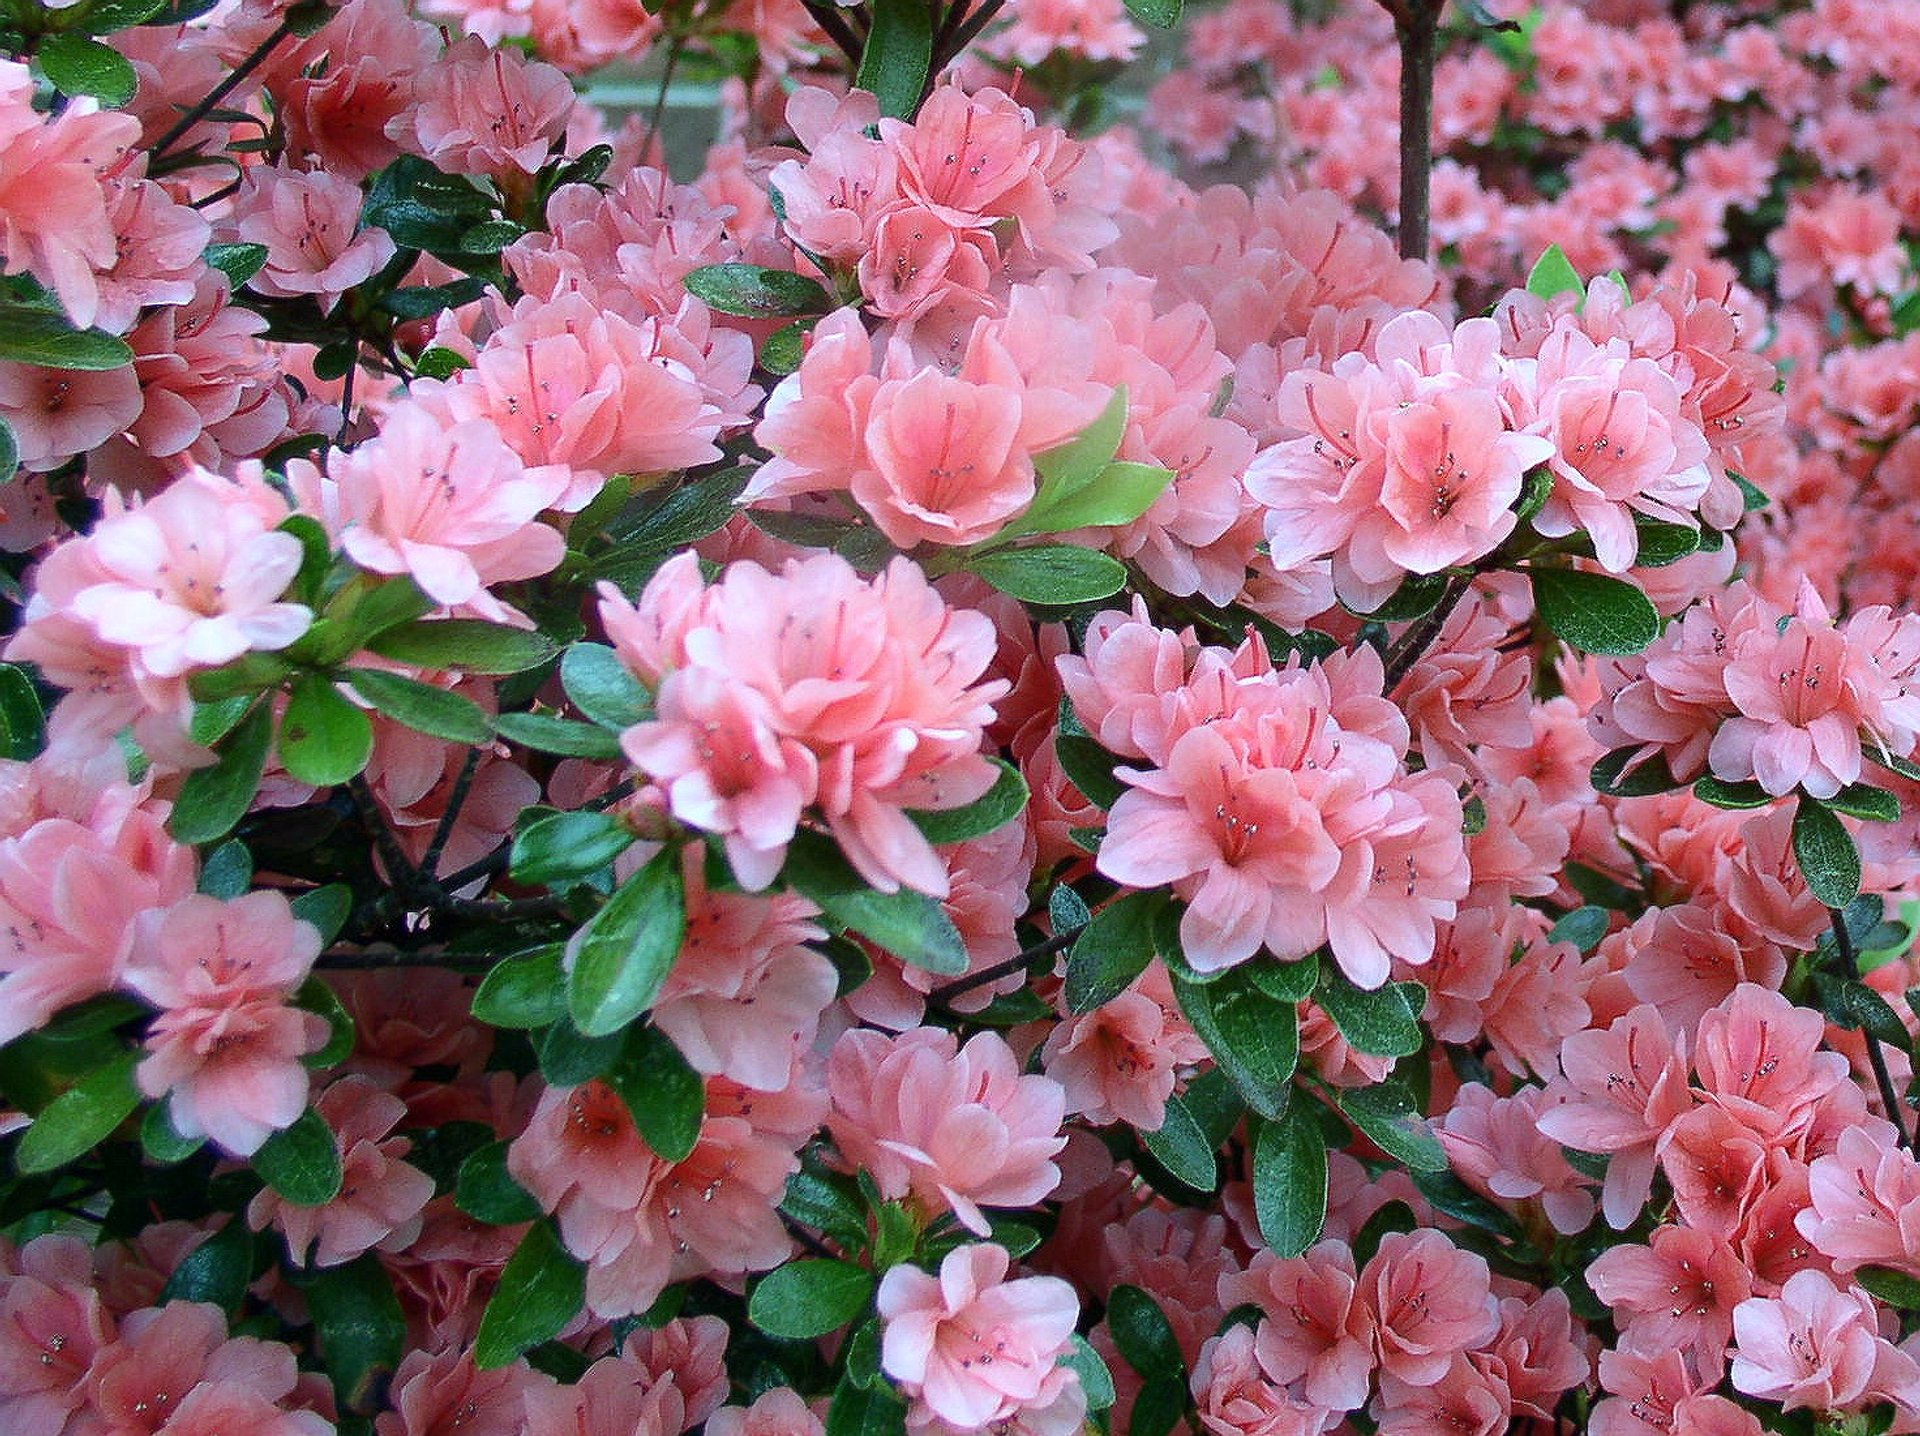 North Carolina Azalea Festival in North Carolina 2020 - Best Time